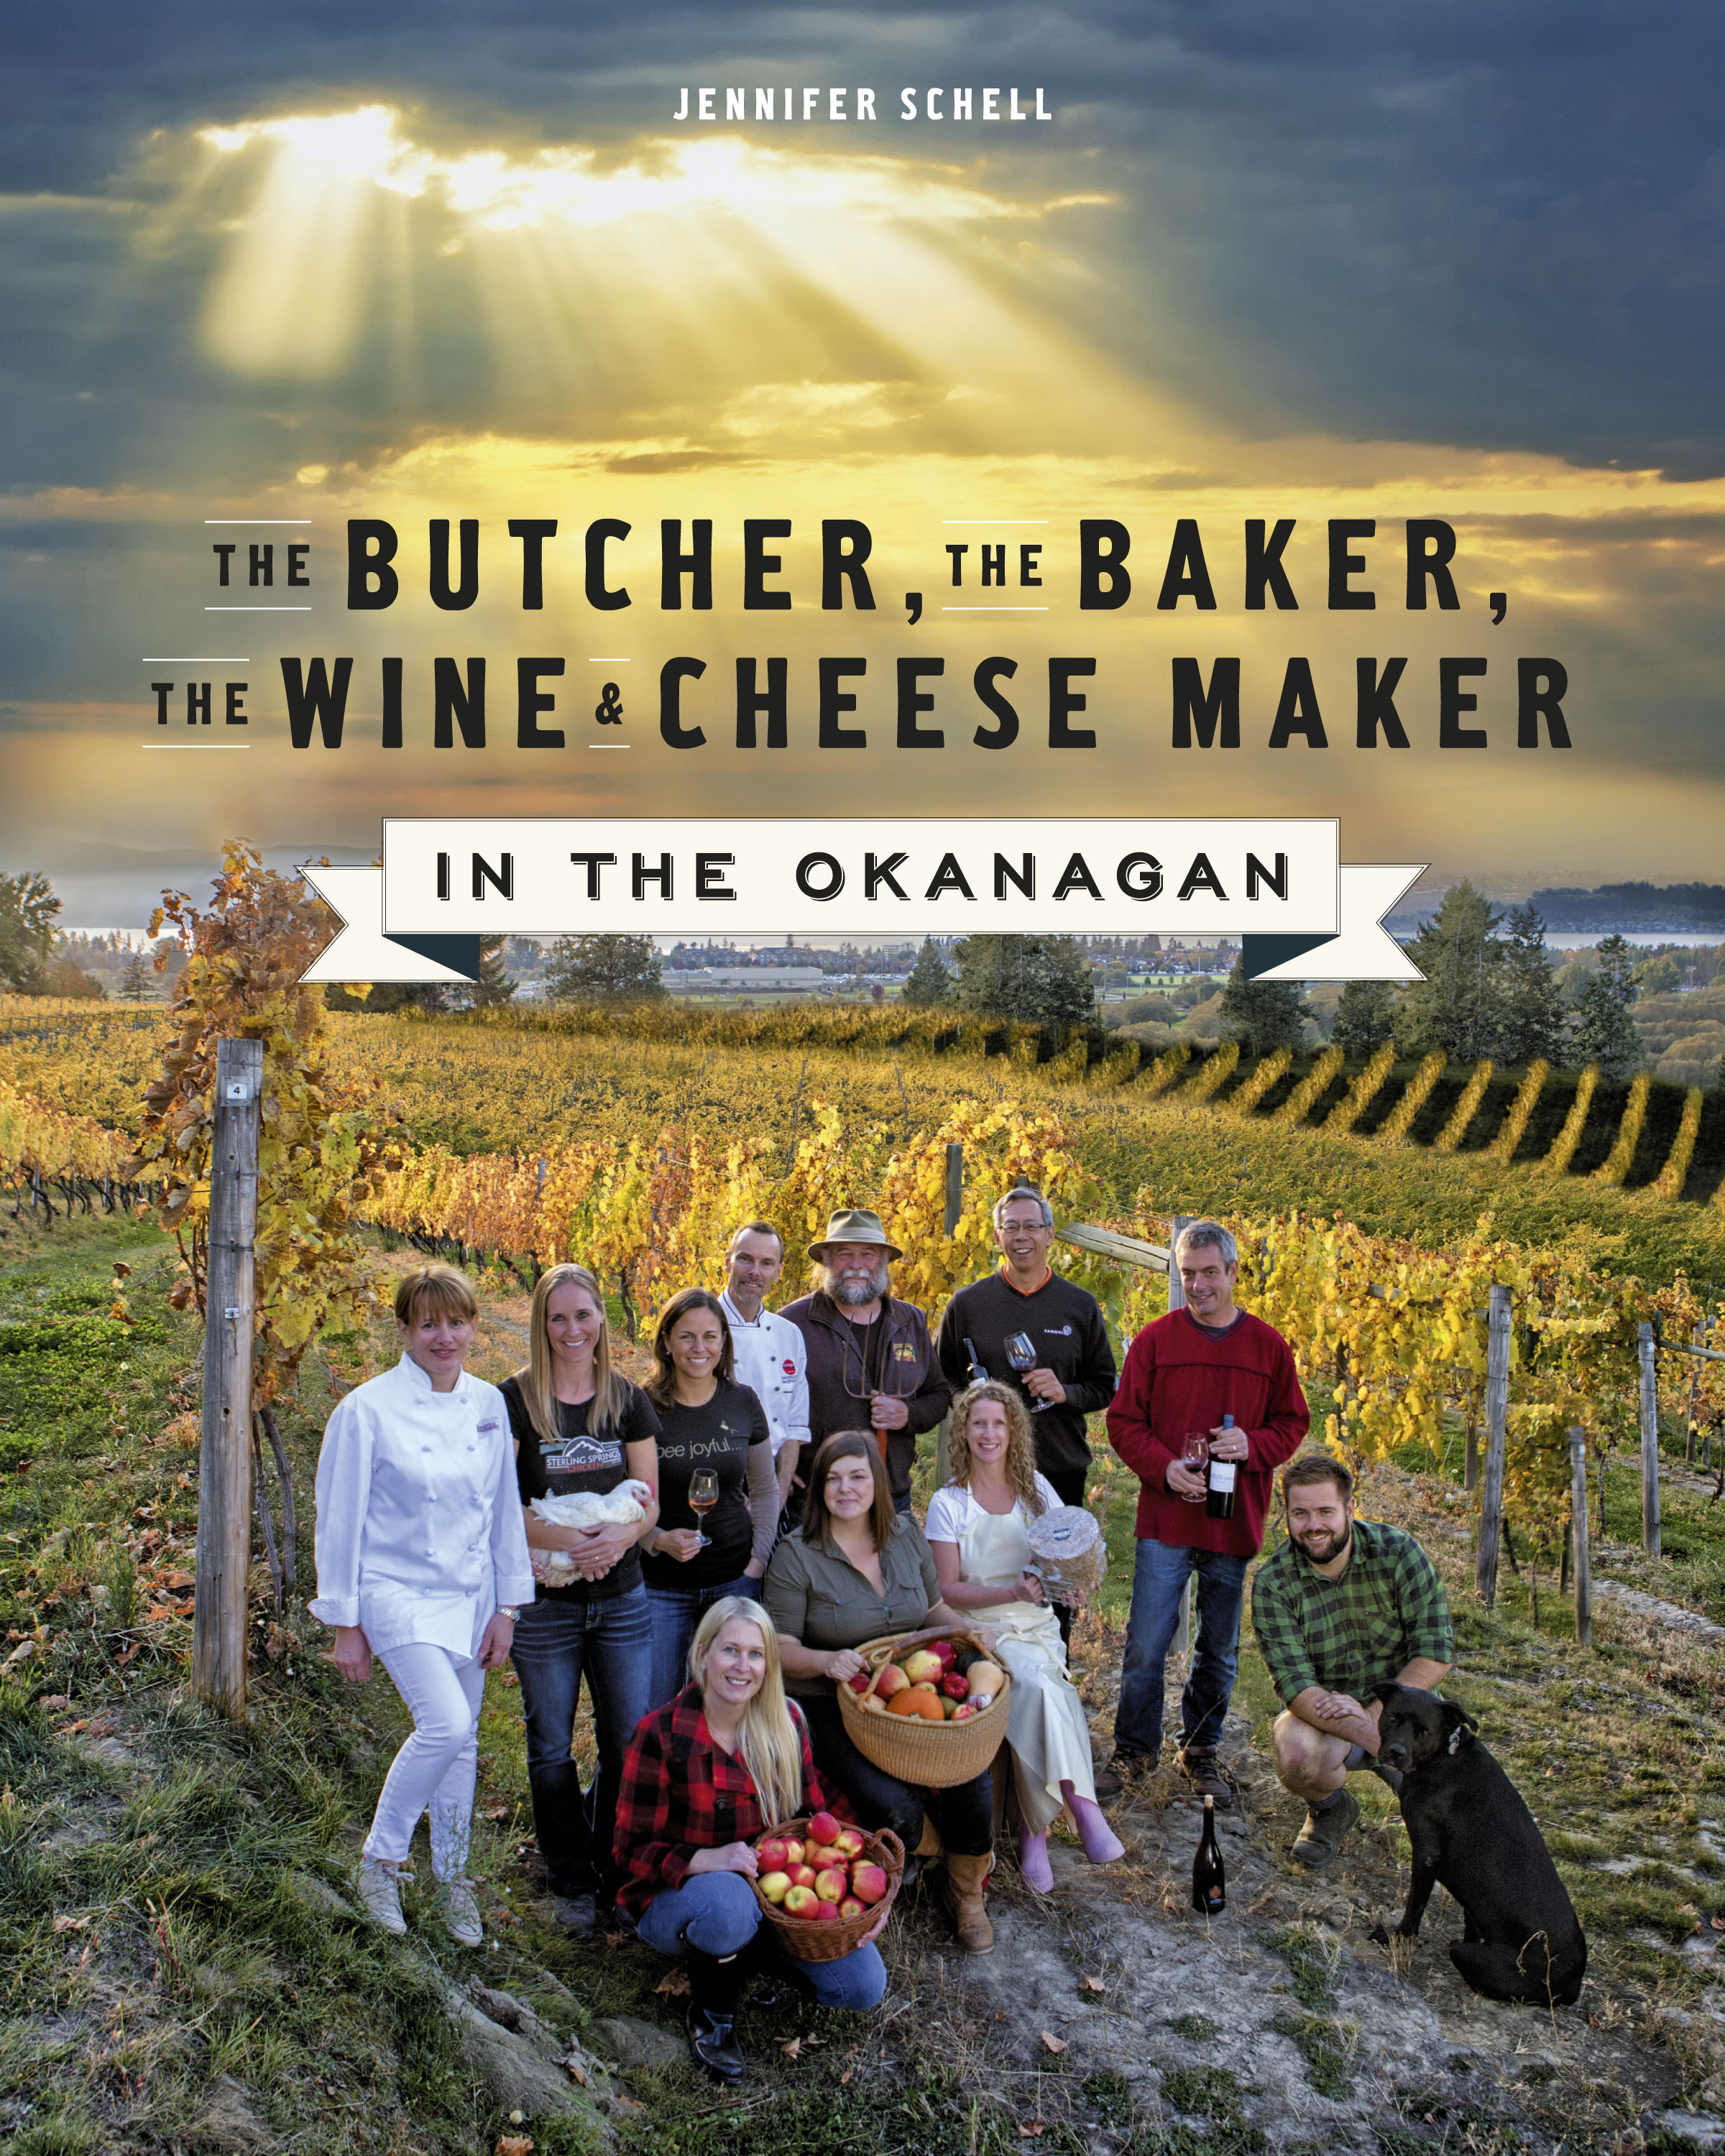 Jennifer Schell's third cookbook and latest cookbook is a new version of her first book featuring the food, drink and farm community in the Okanagan.